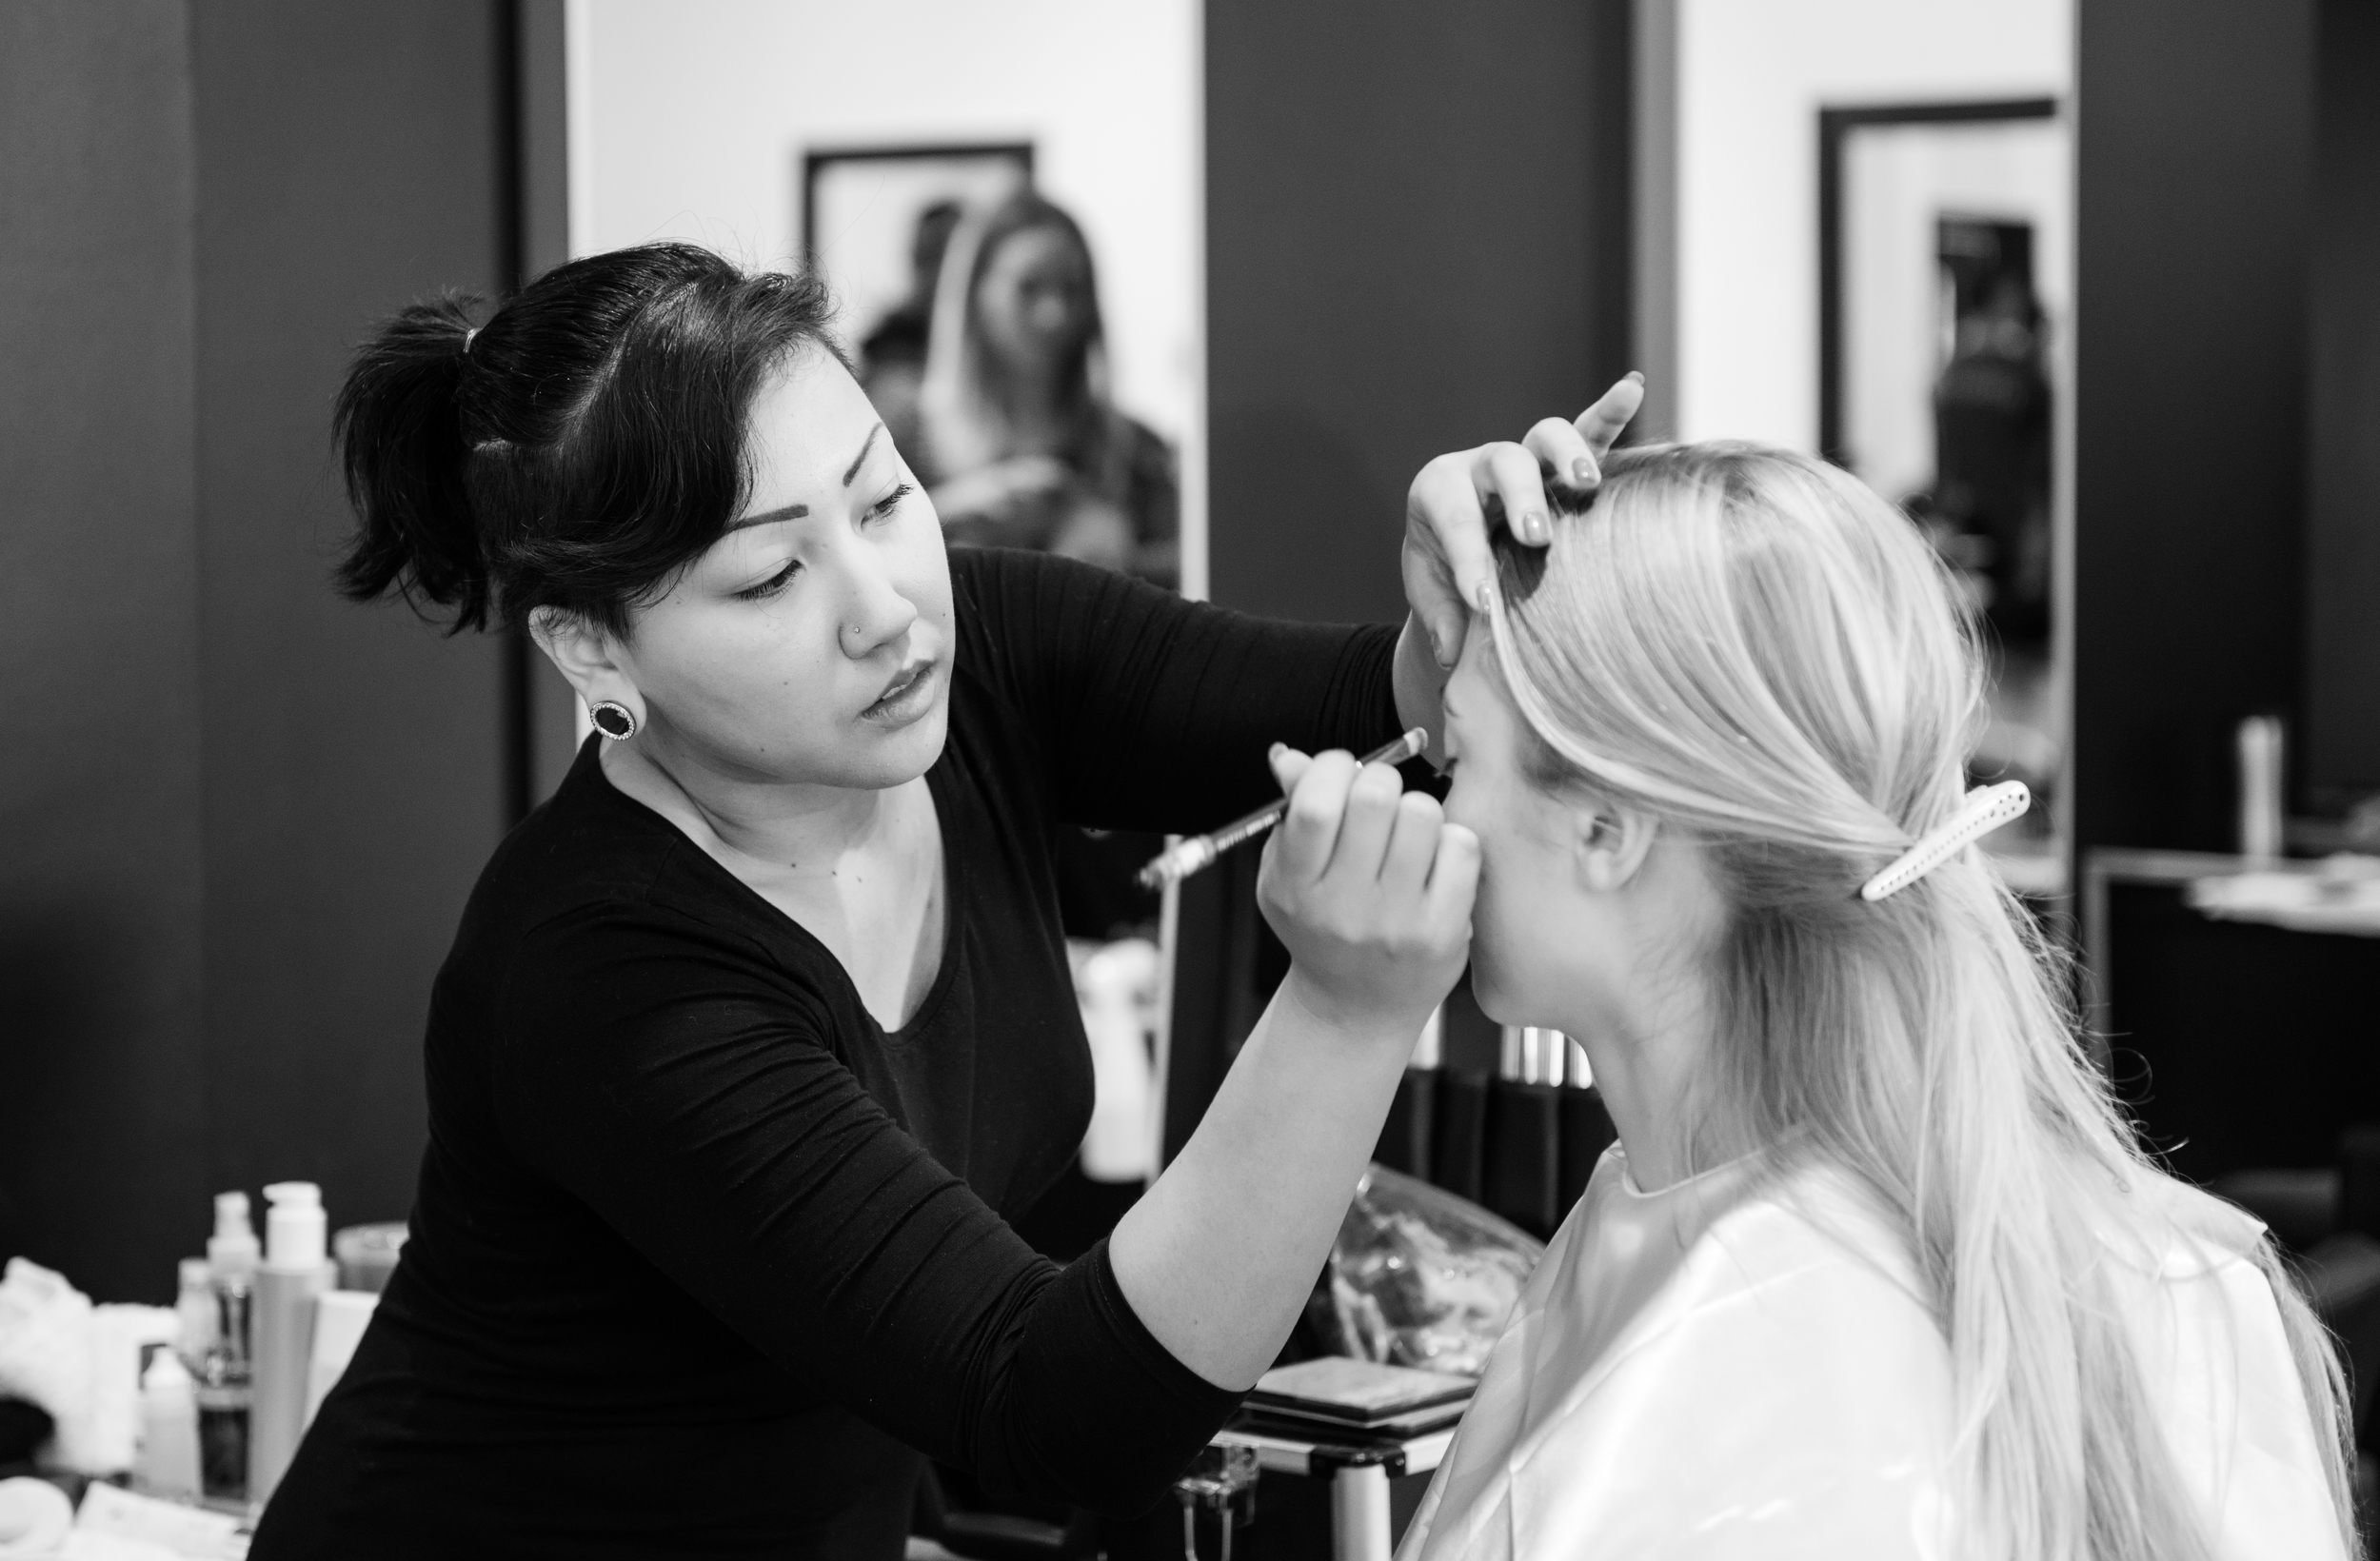 Content Magazine | Image Challenge '14 | Behind The Scenes | Hair by Umbrella Salon  Photo by: Khiem Hoang